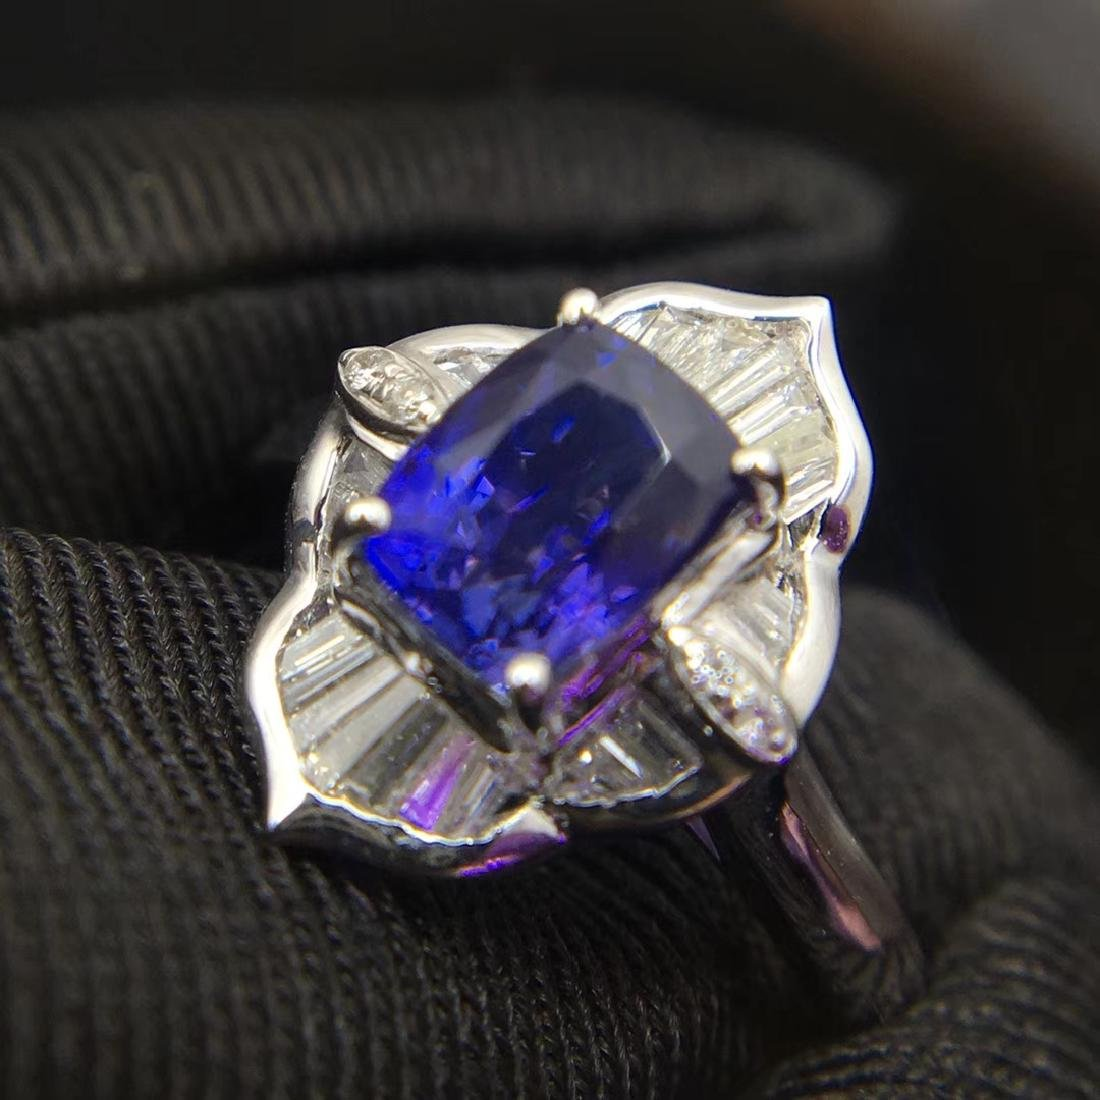 1.52ct Sapphire Ring in 18kt white Gold - 2